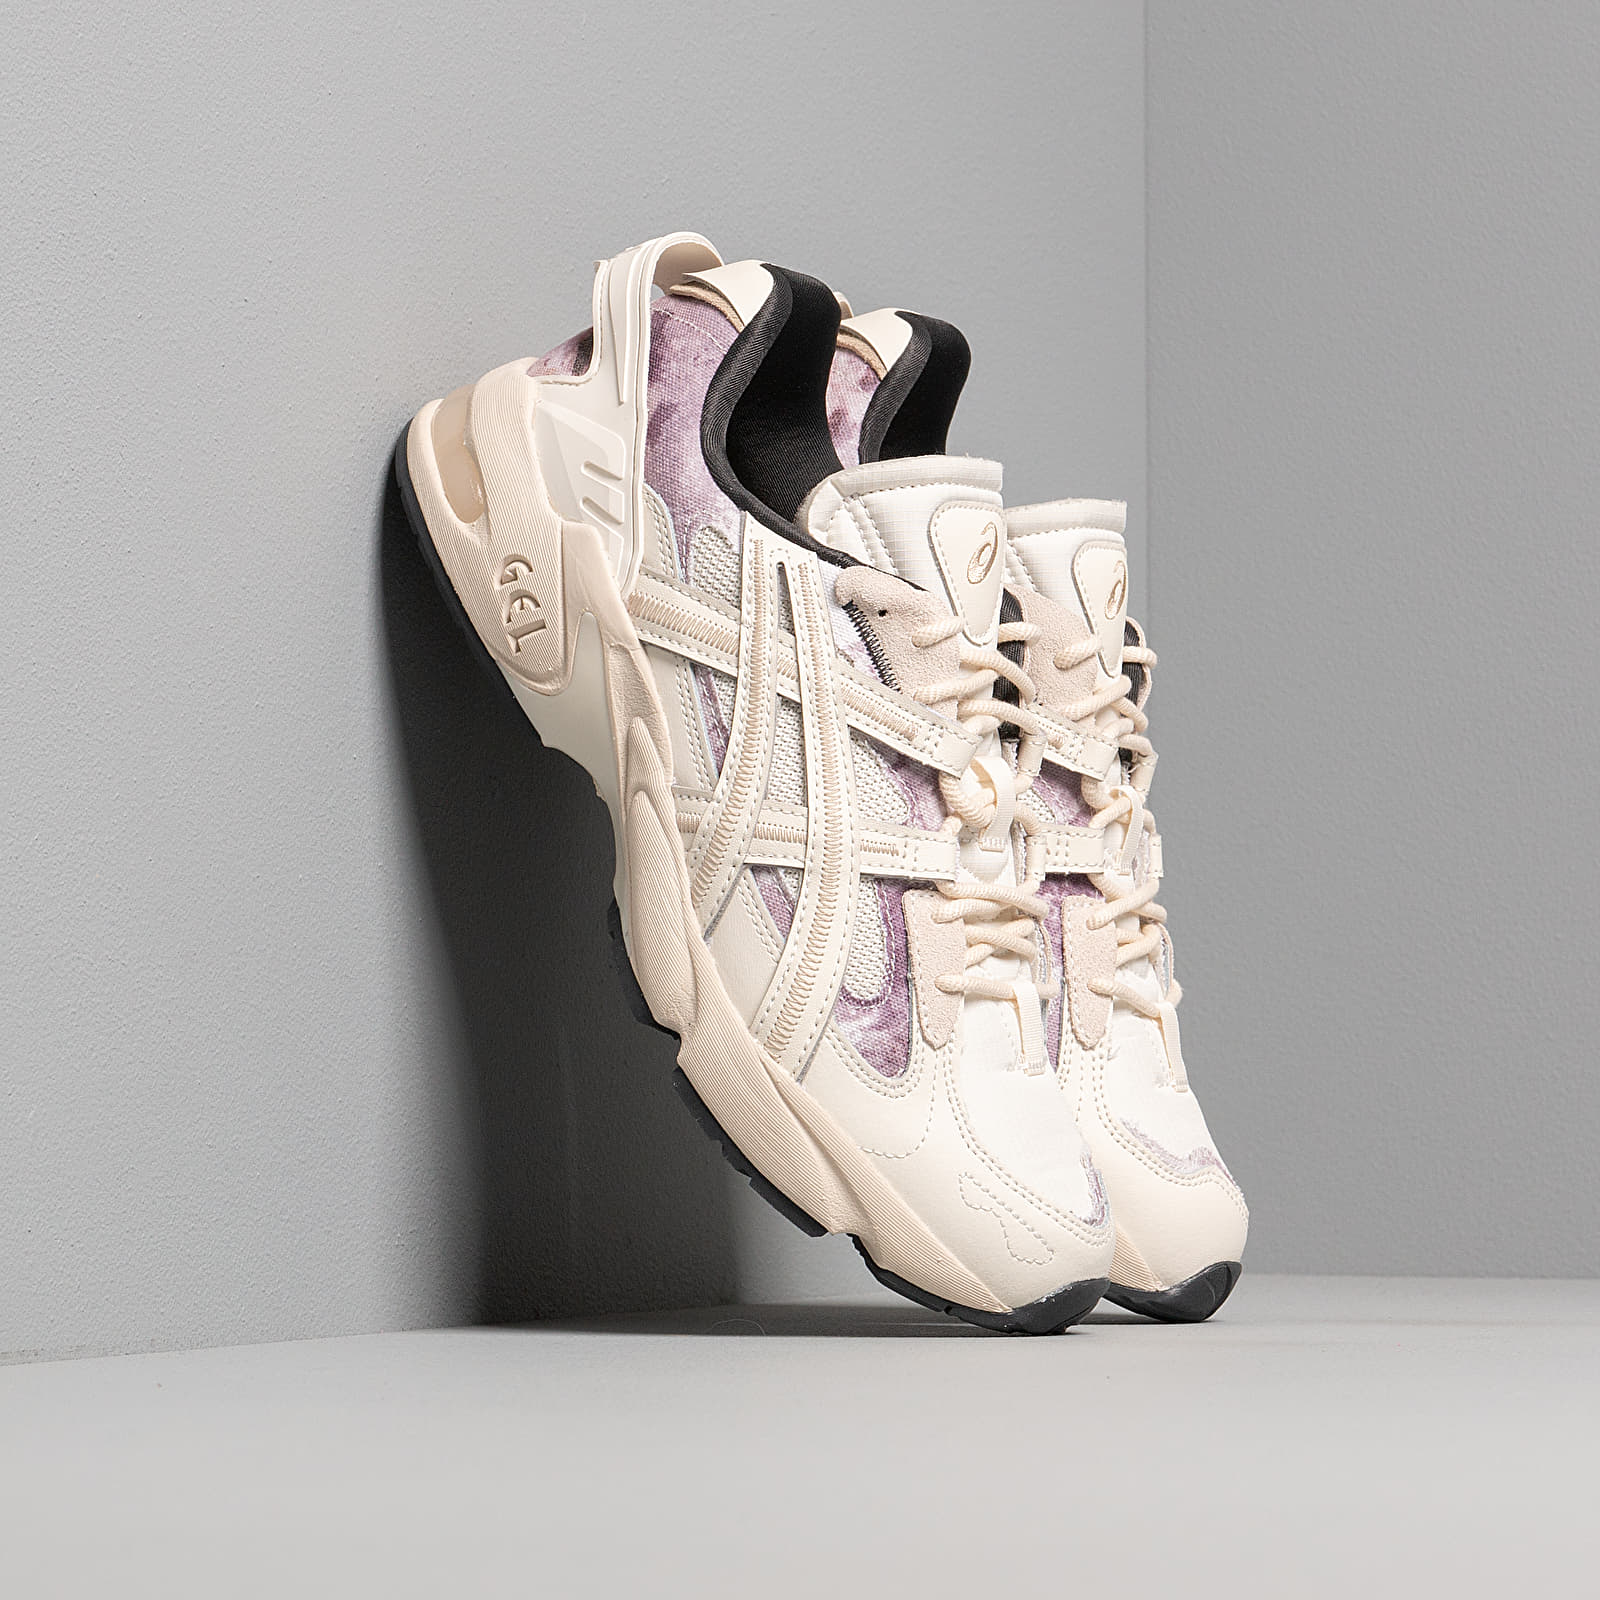 Asics x RE-CONSTRUCTION Gel-Kayano 5 RE